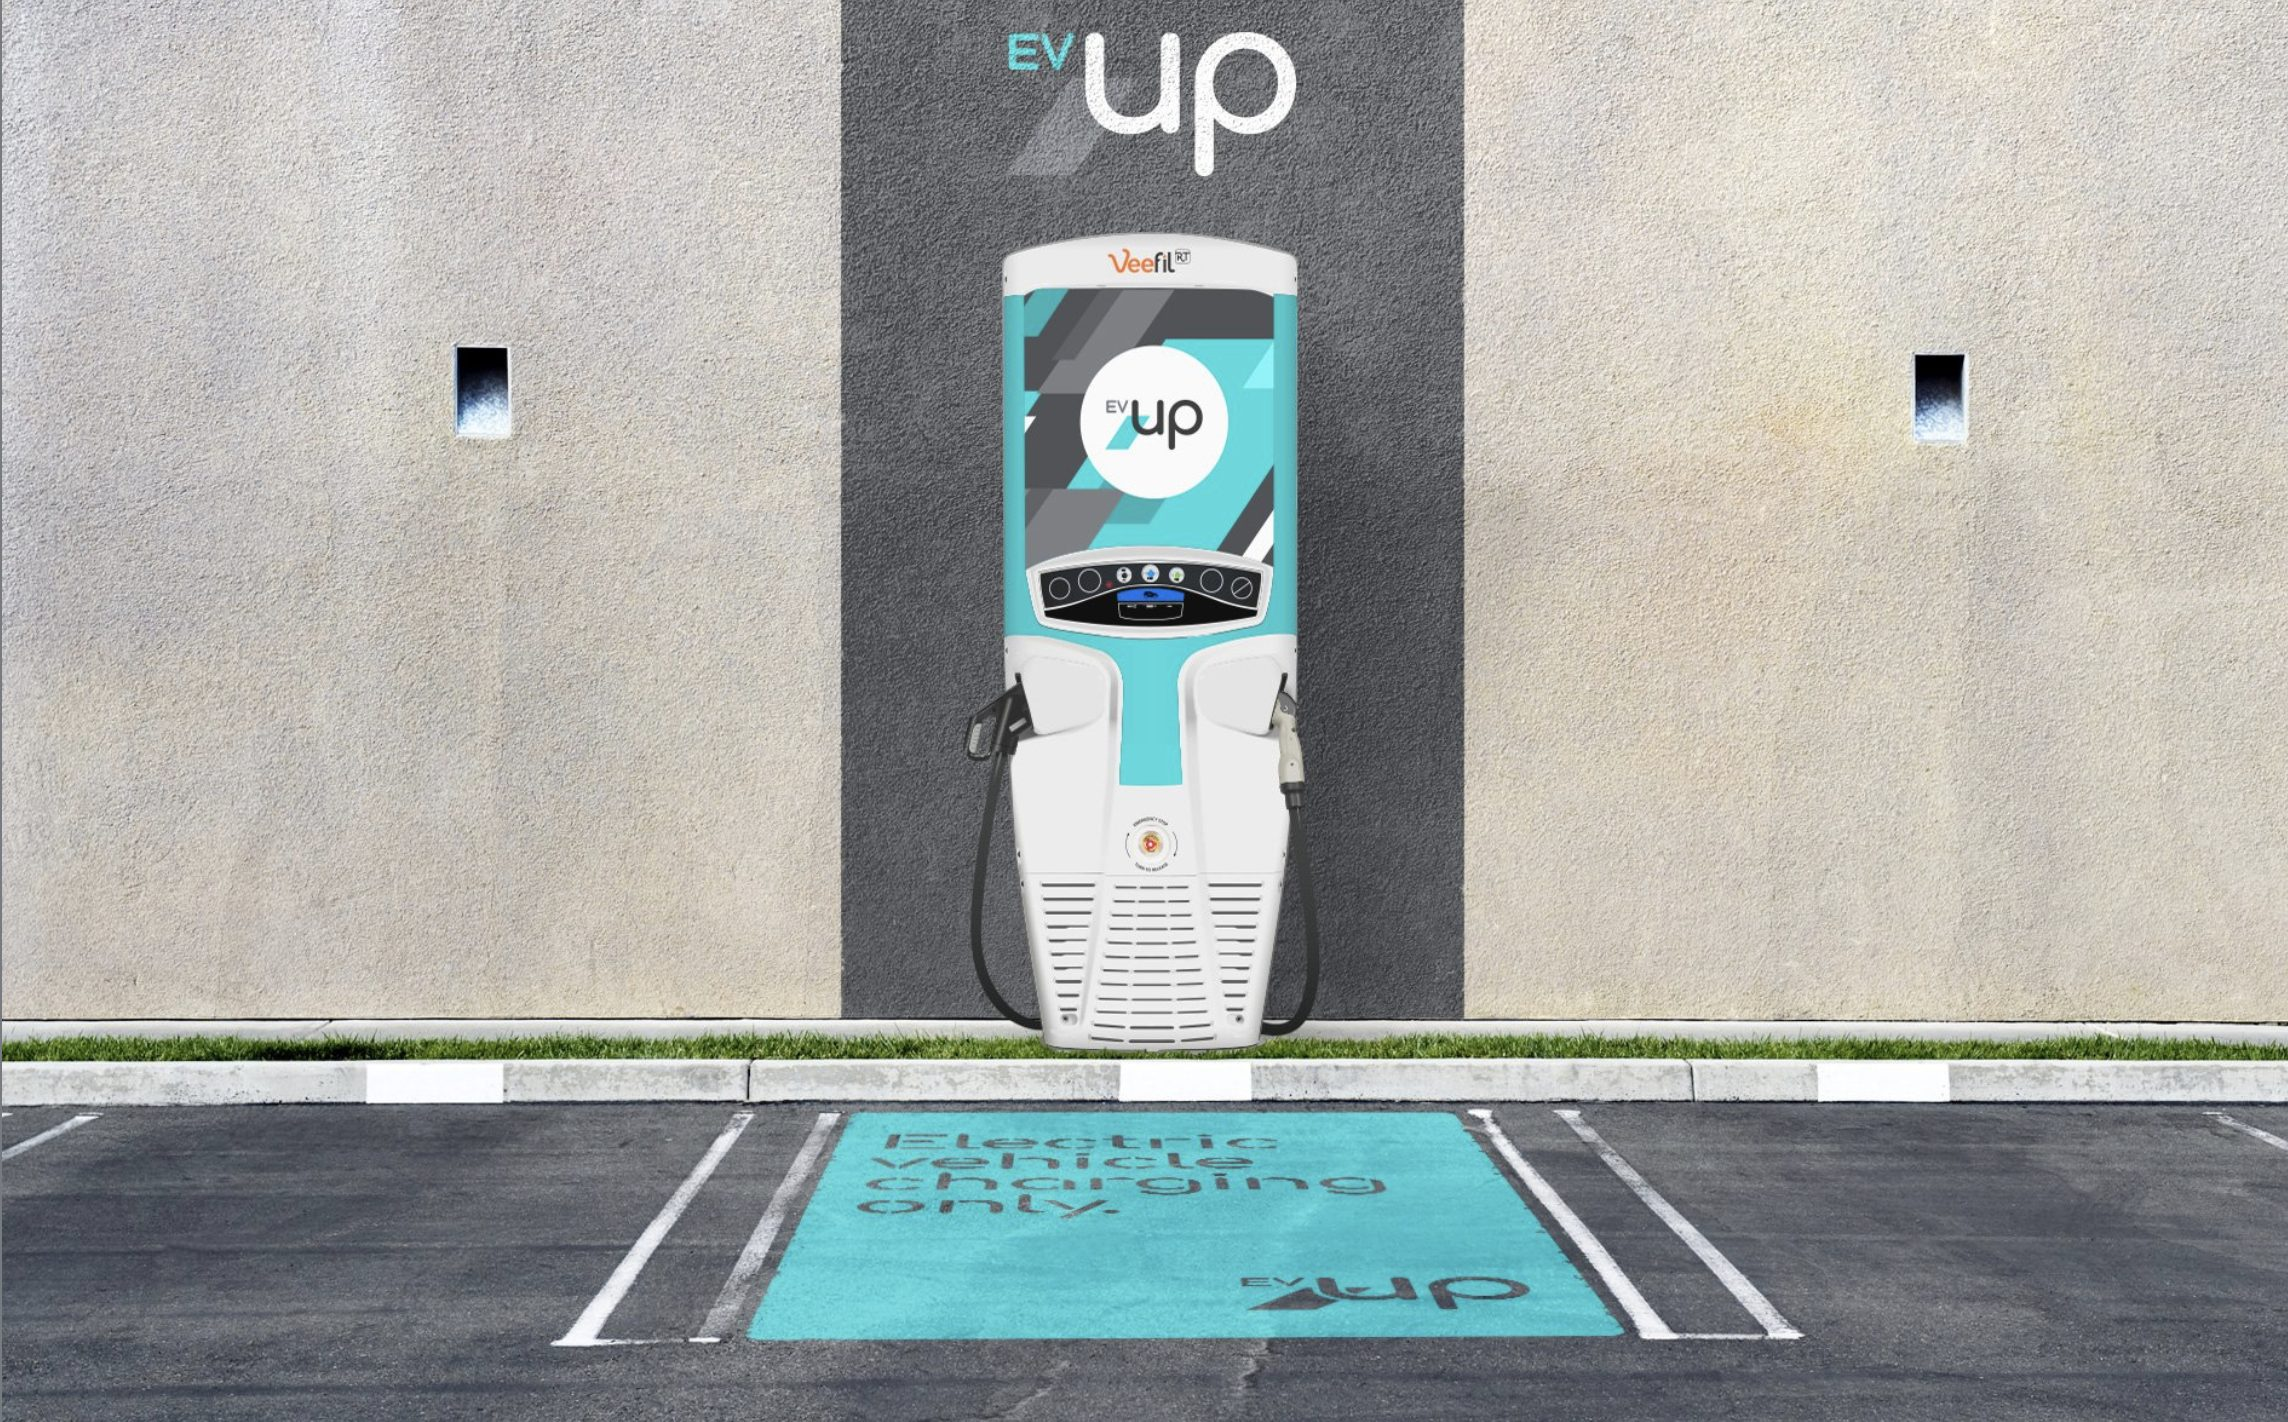 EV Up car charger